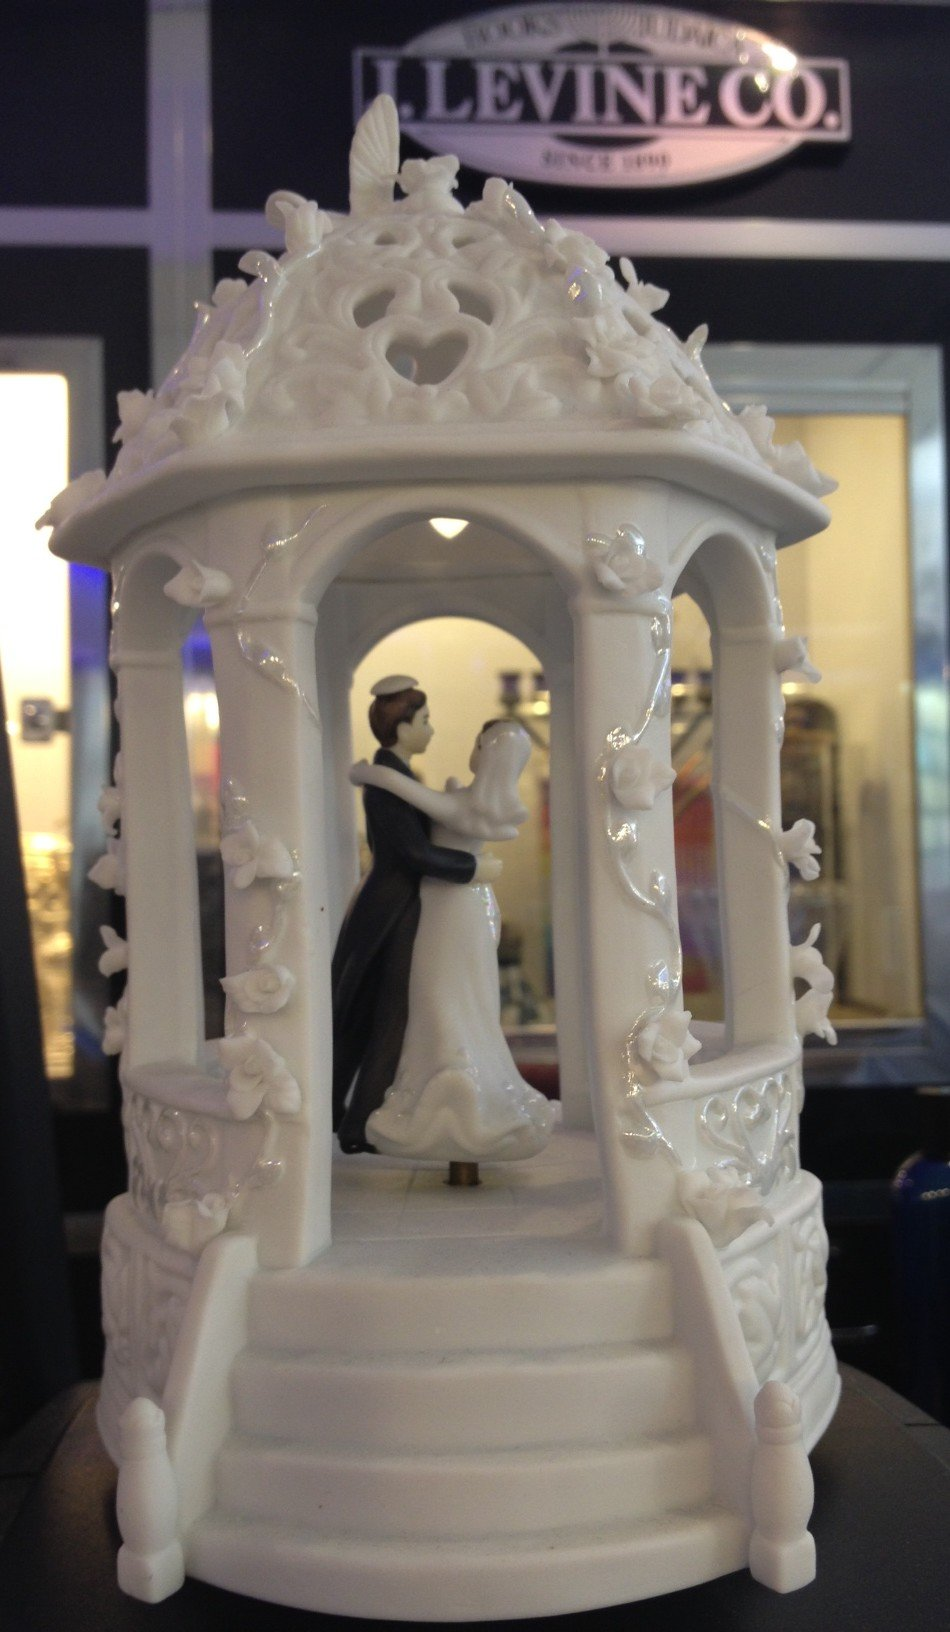 Love is in the Air - The Perfect Jewish Wedding Accessory- Dancing Bride & Groom (with Kippah/Yarlmulka) Twirl In Musical Wind up Gazebo